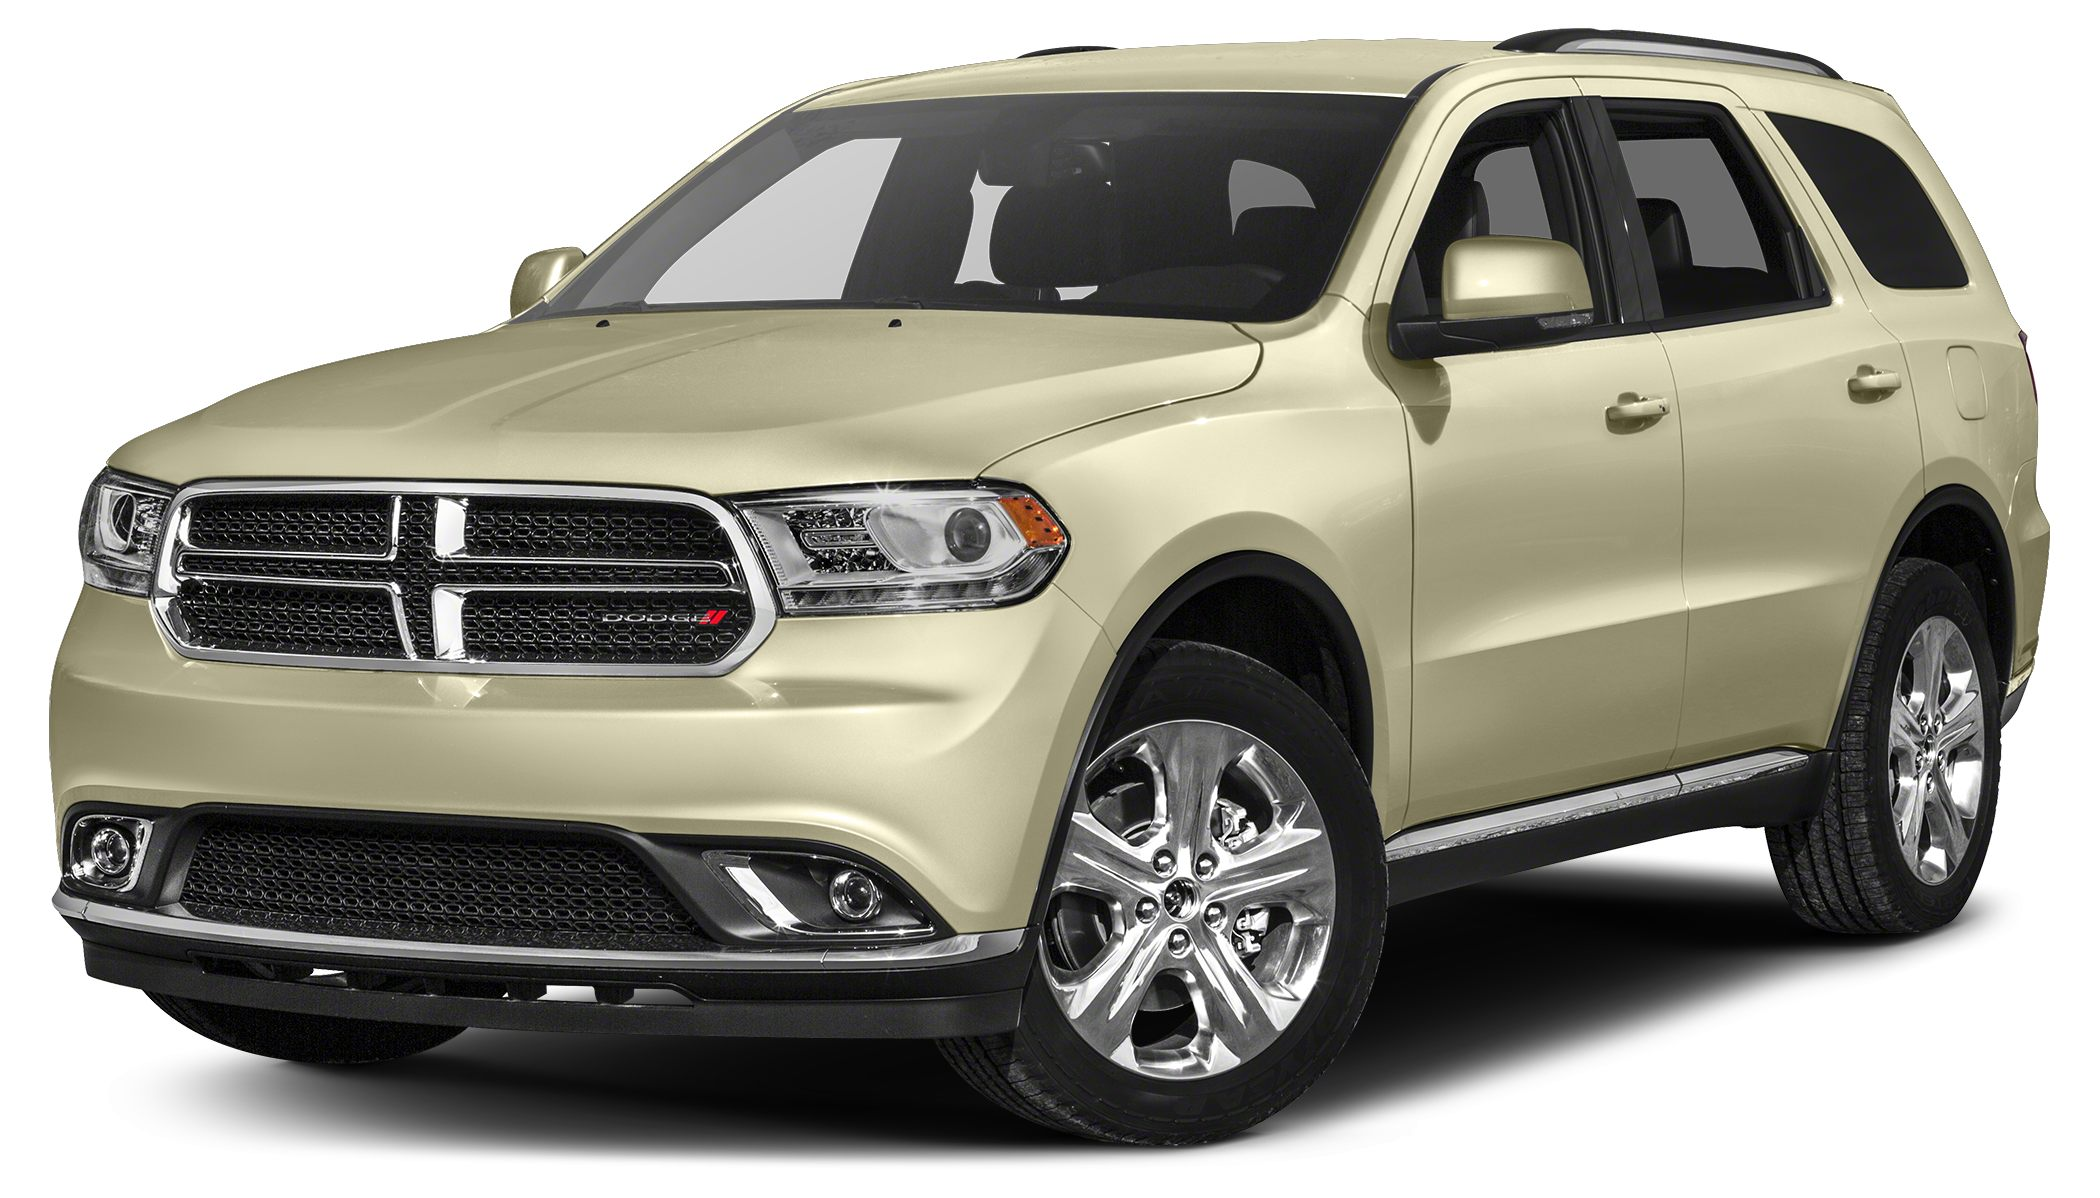 2014 Dodge Durango Limited FUEL EFFICIENT 25 MPG Hwy18 MPG City LOW MILES - 27368 Third Row Se